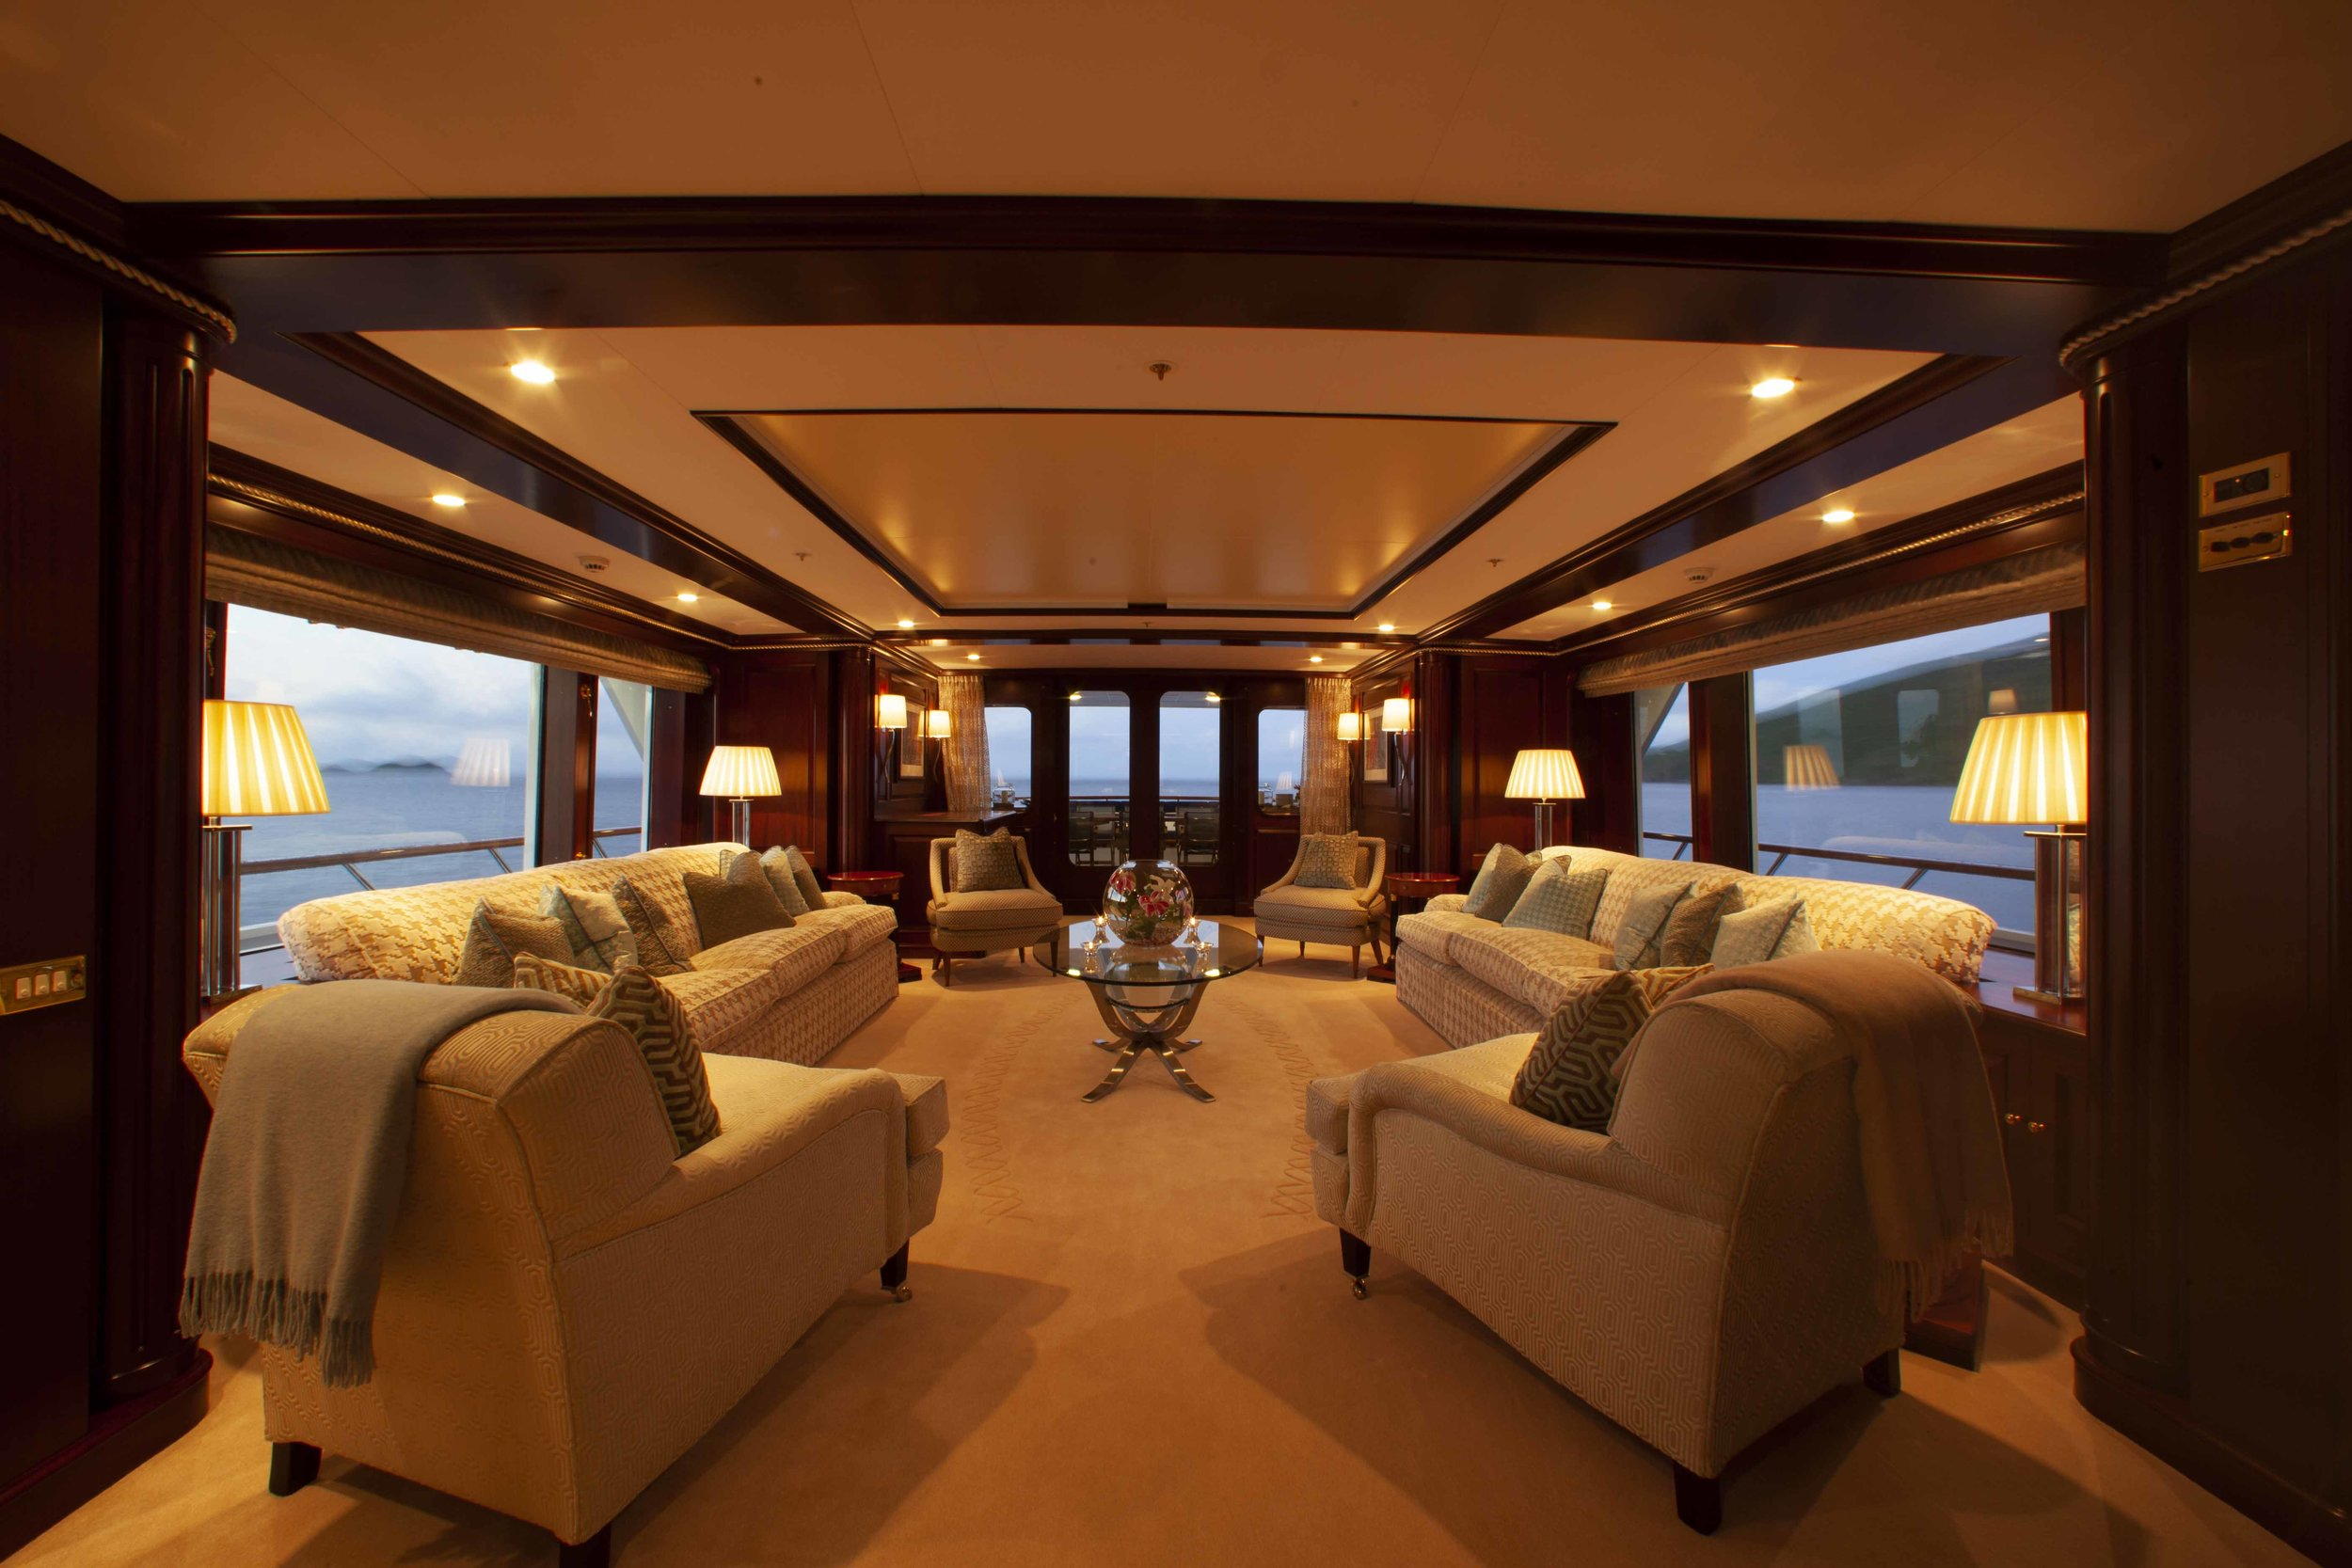 Interiors and details onboard Teleost, 161' Feadship in St. Thomas, USVI.